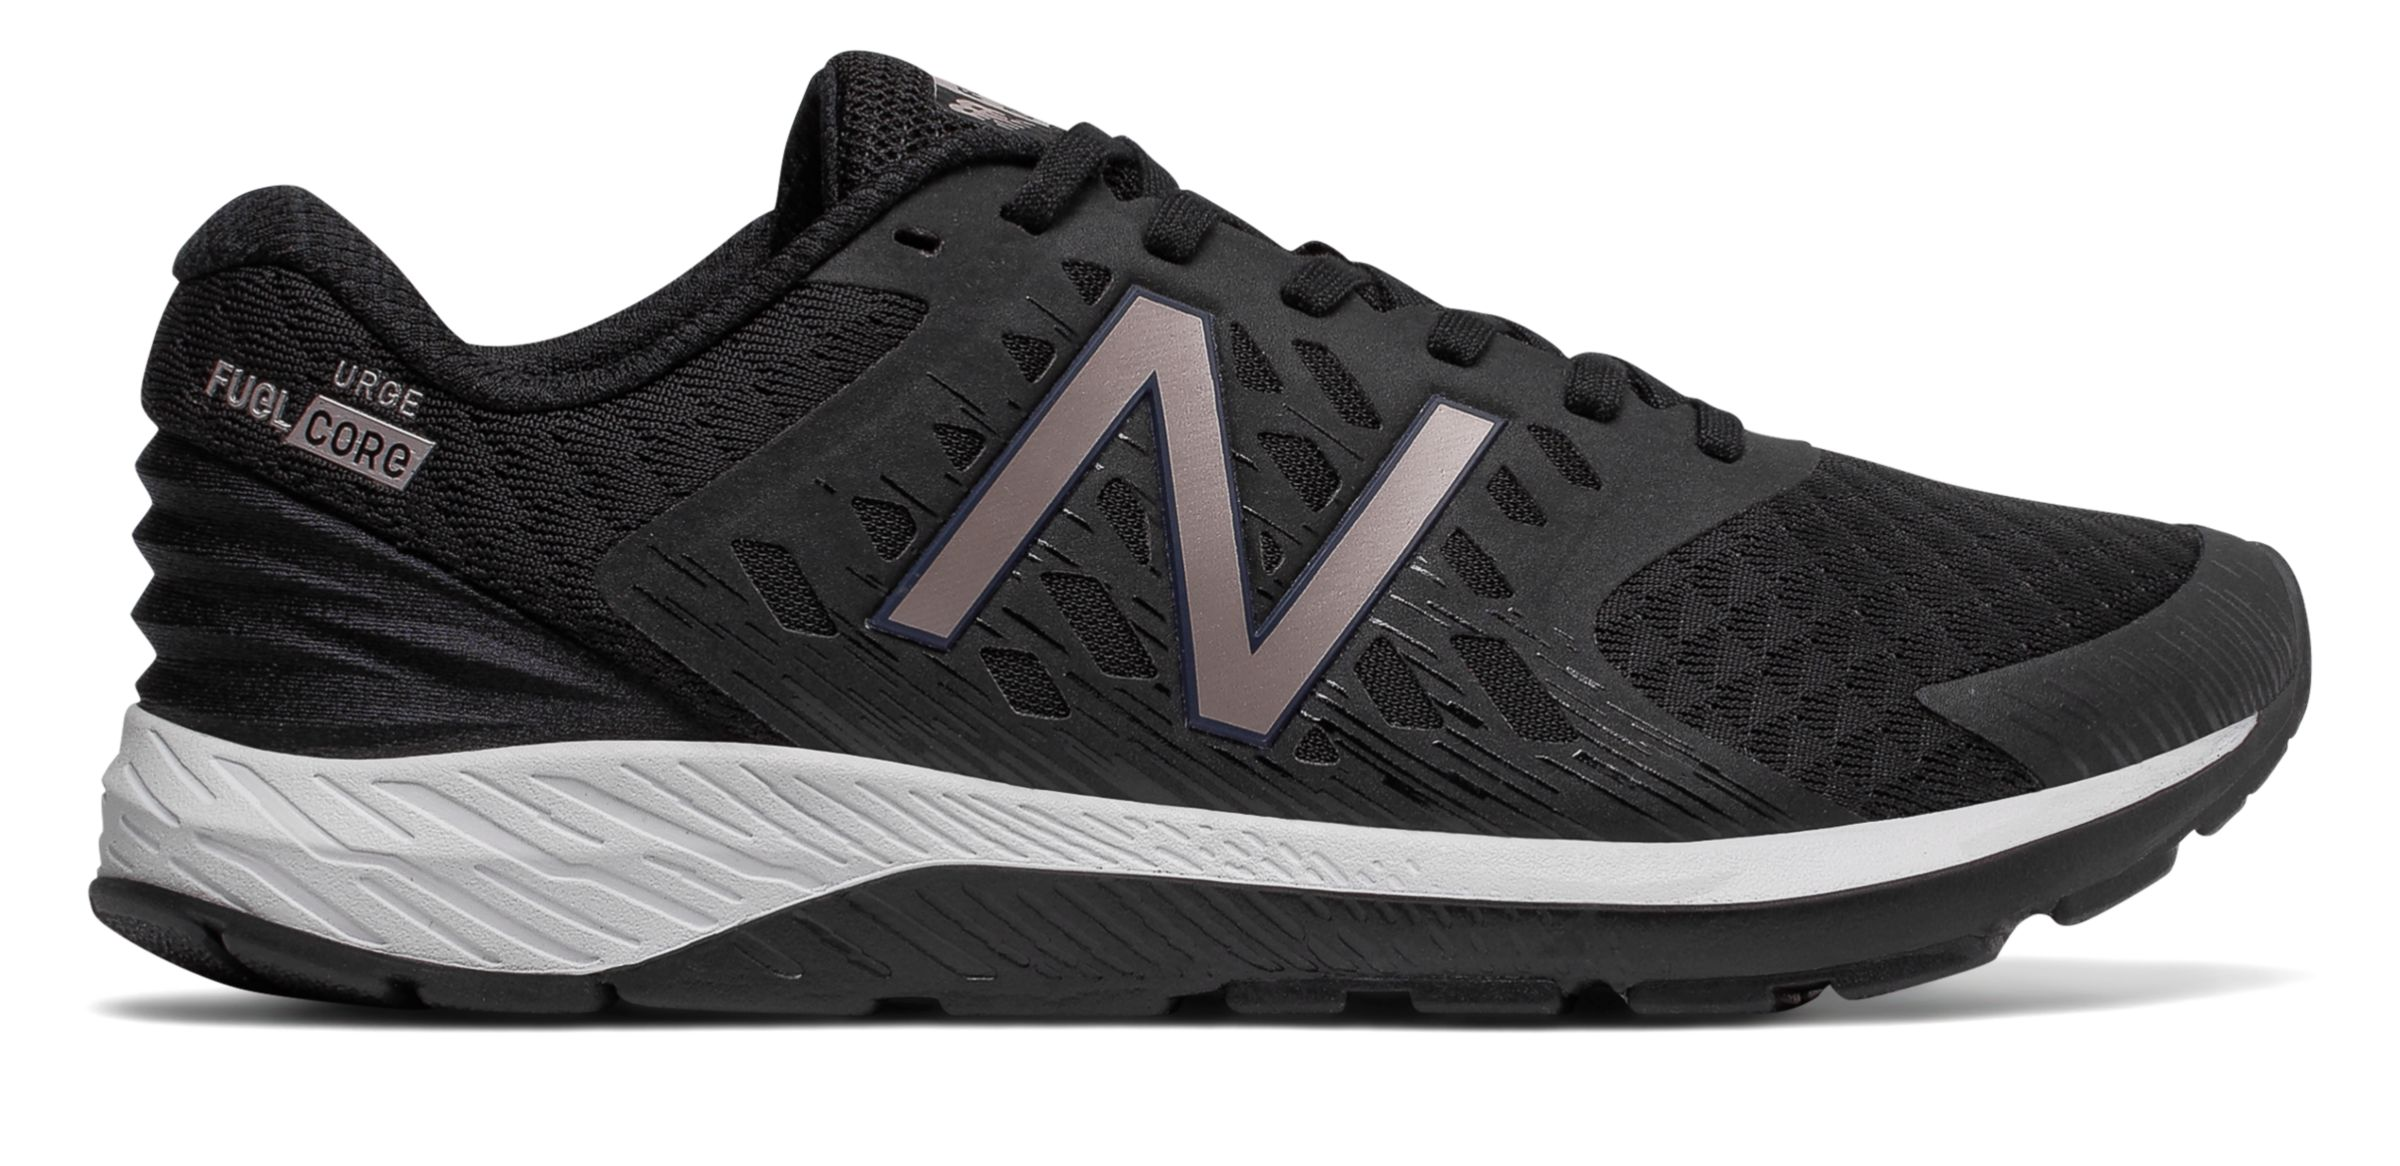 NB FuelCore Urge v2, Black with Champagne Metallic